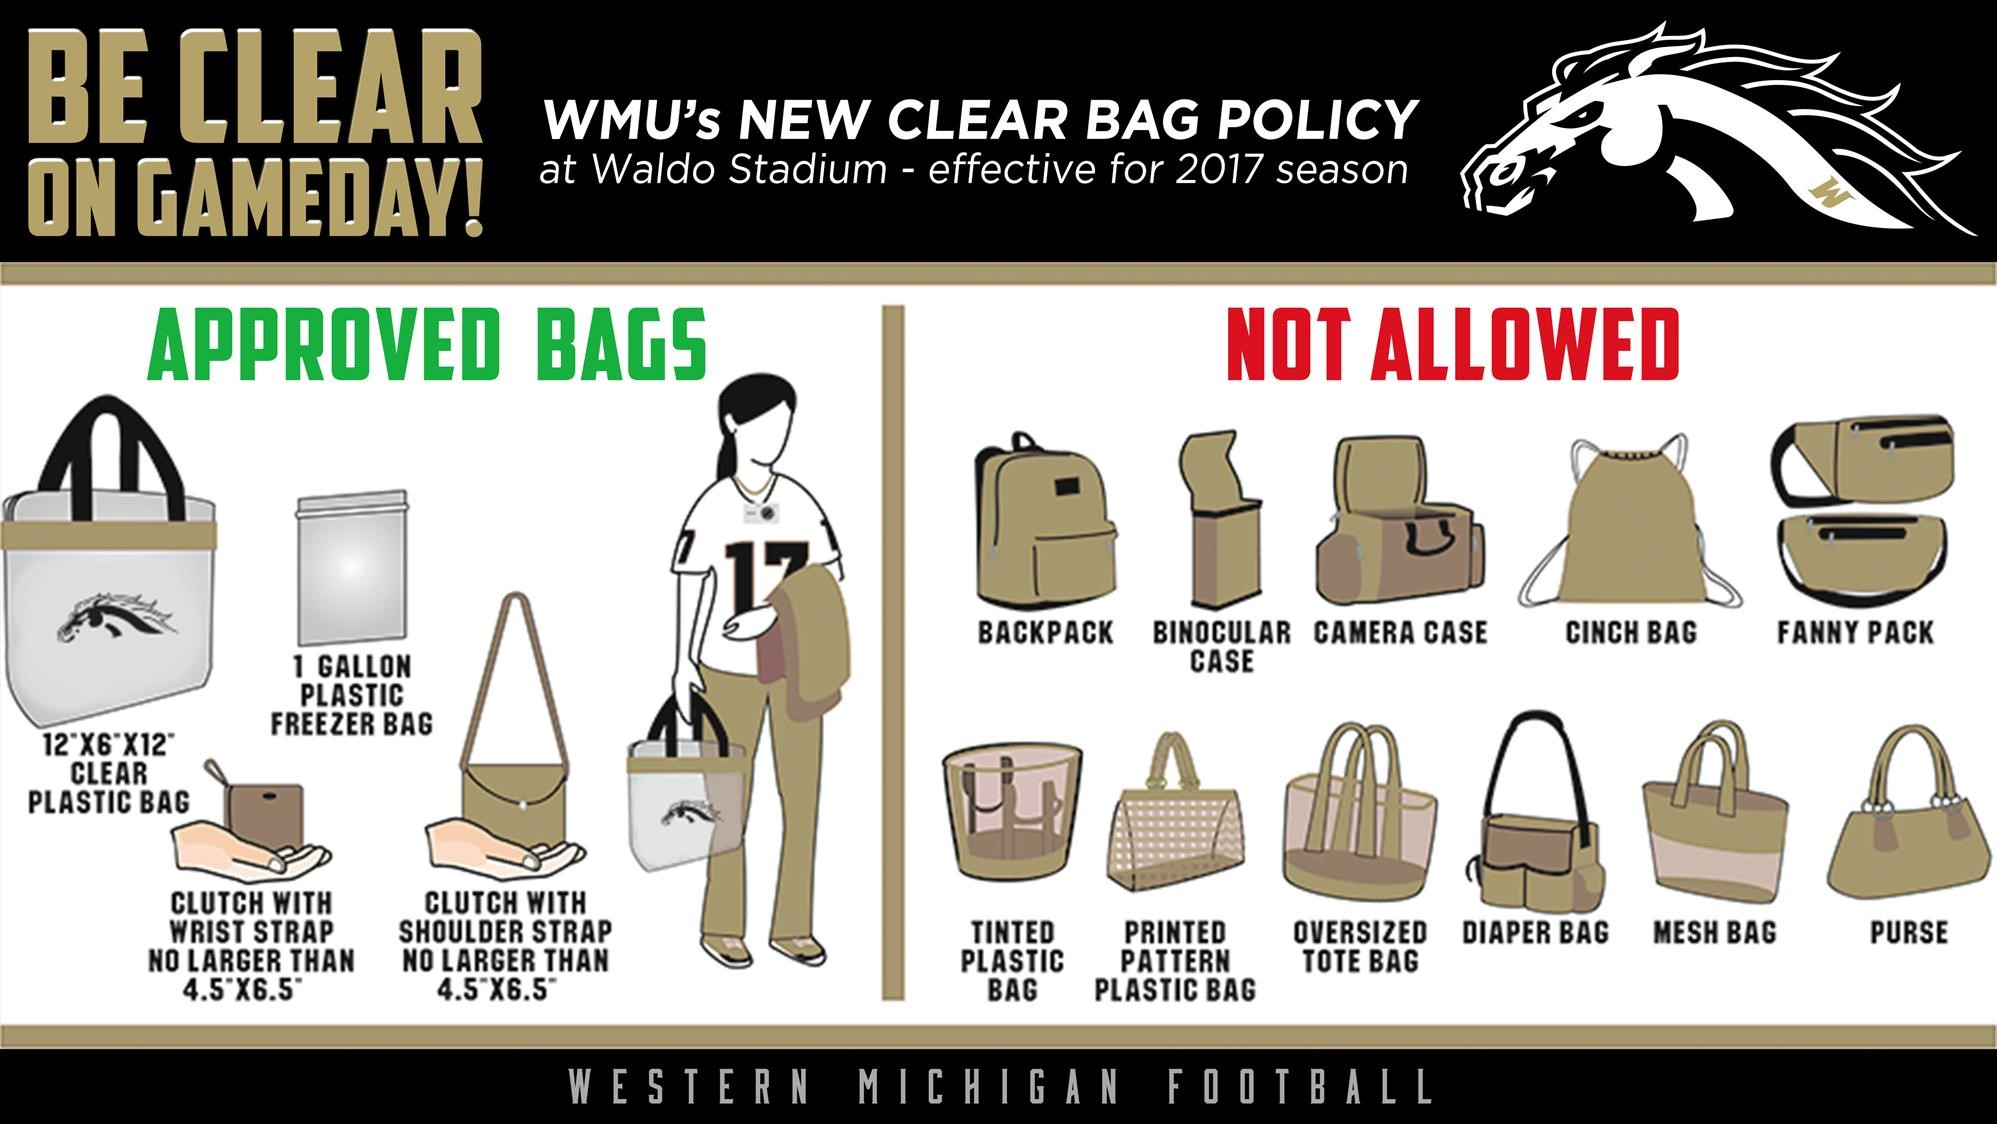 Wmu To Implement Clear Bag Policy At Waldo Stadium